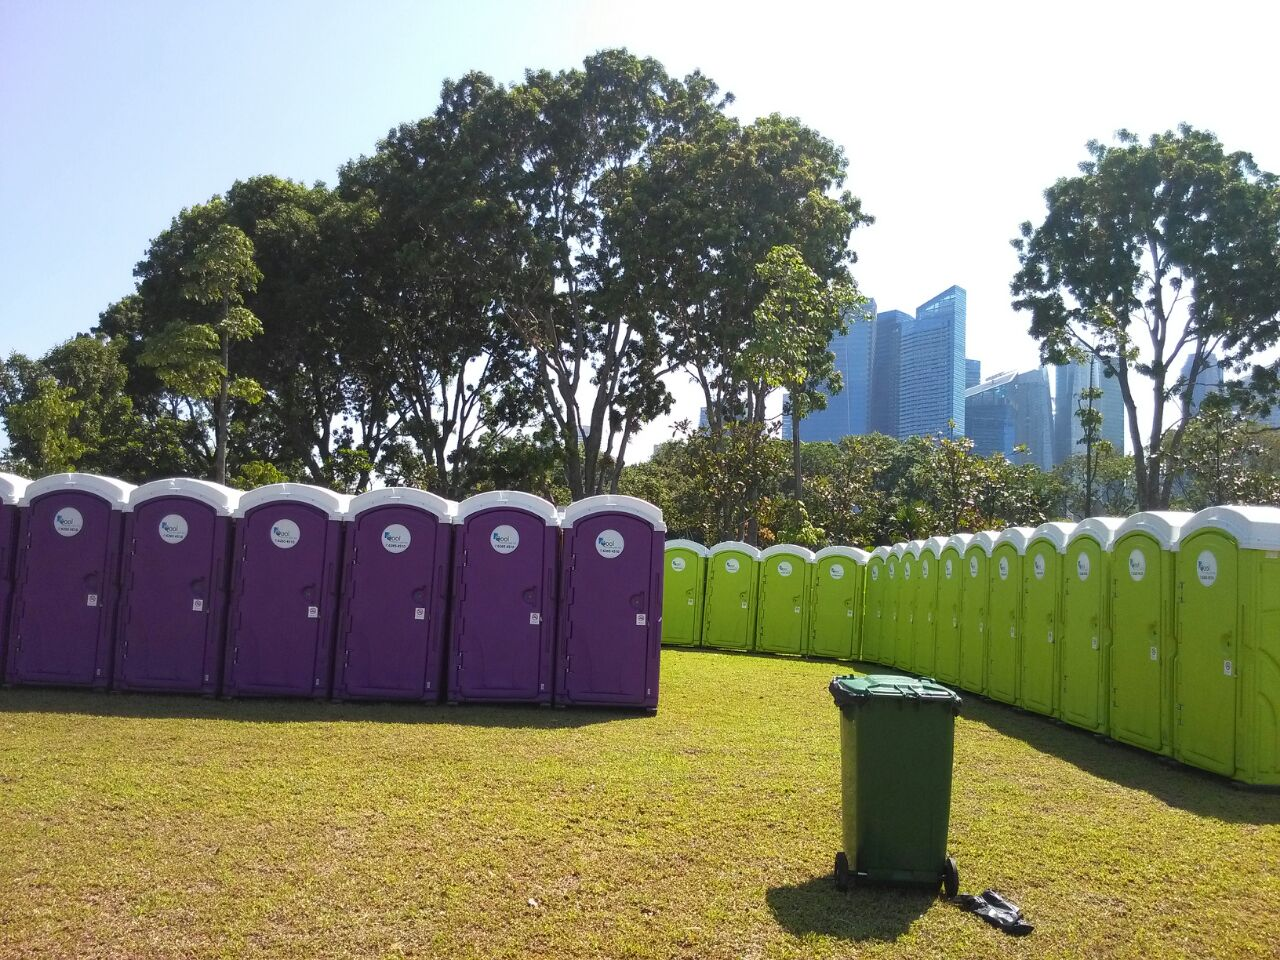 Qool Enviro portable toilet in cold storage kids run